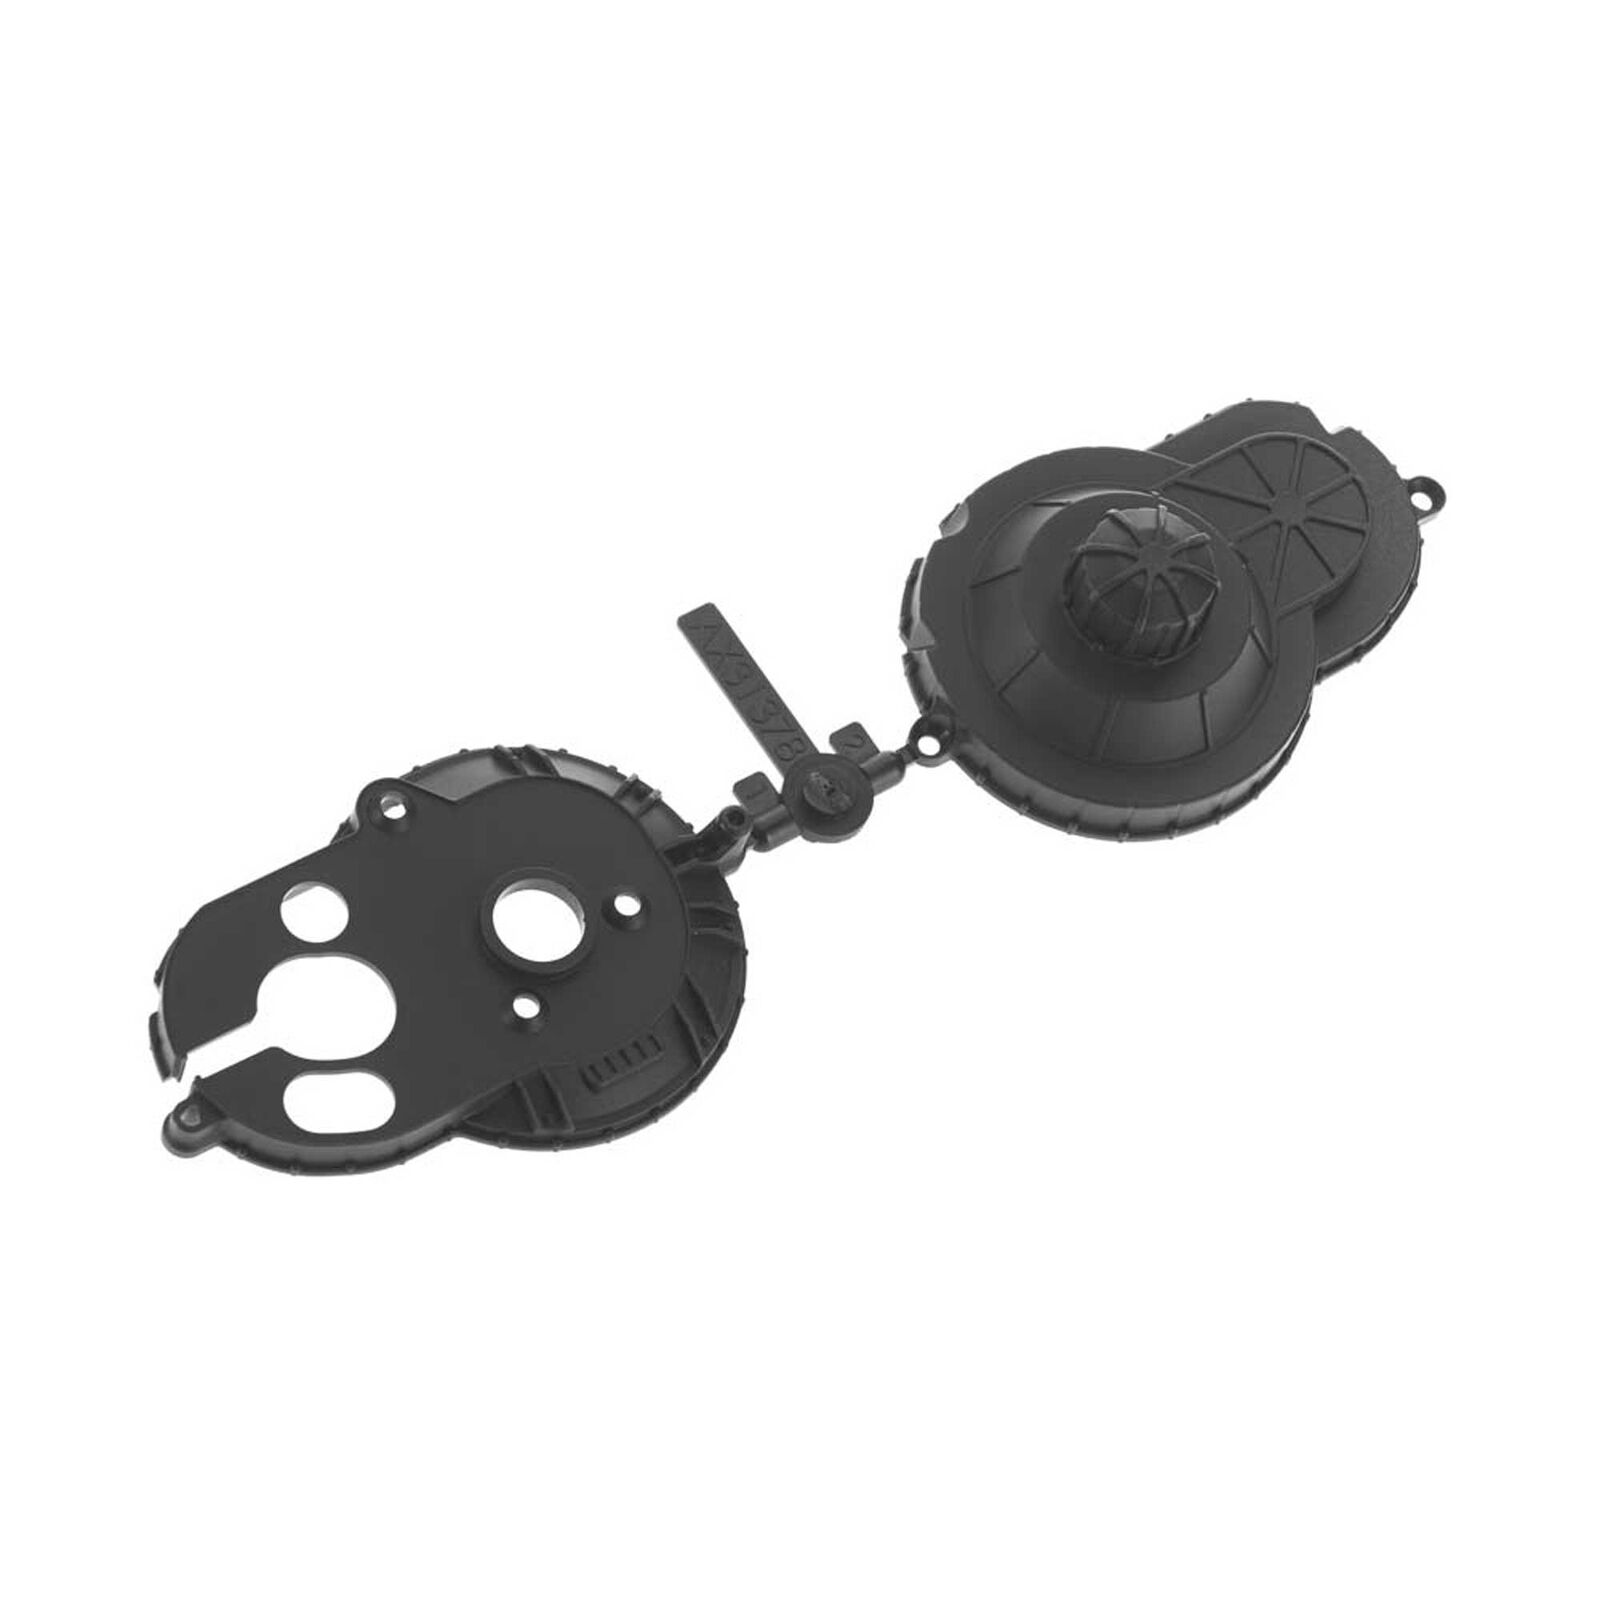 2-Speed Transmission Spur Gear Cover SCX10 II